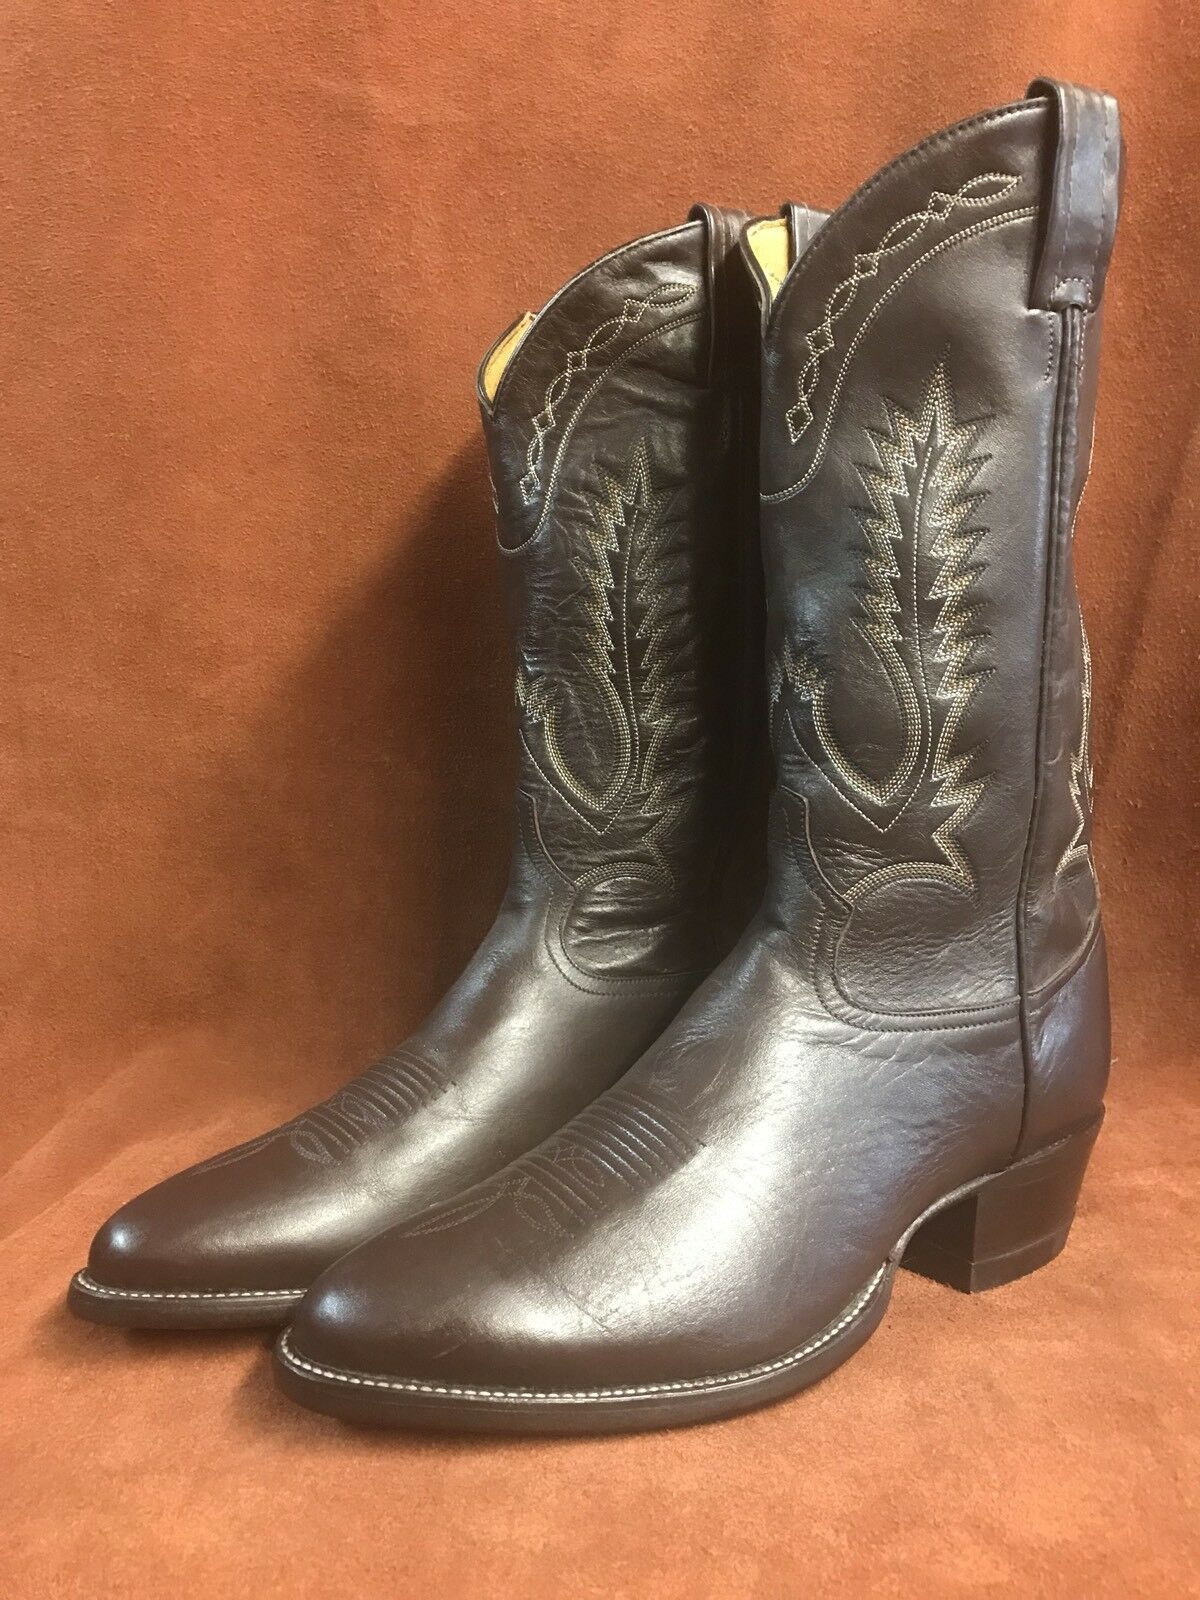 Vintage Tony Lama New Marroneee Leather stivali 9.5 D Made in El Paso, Texas  69.00